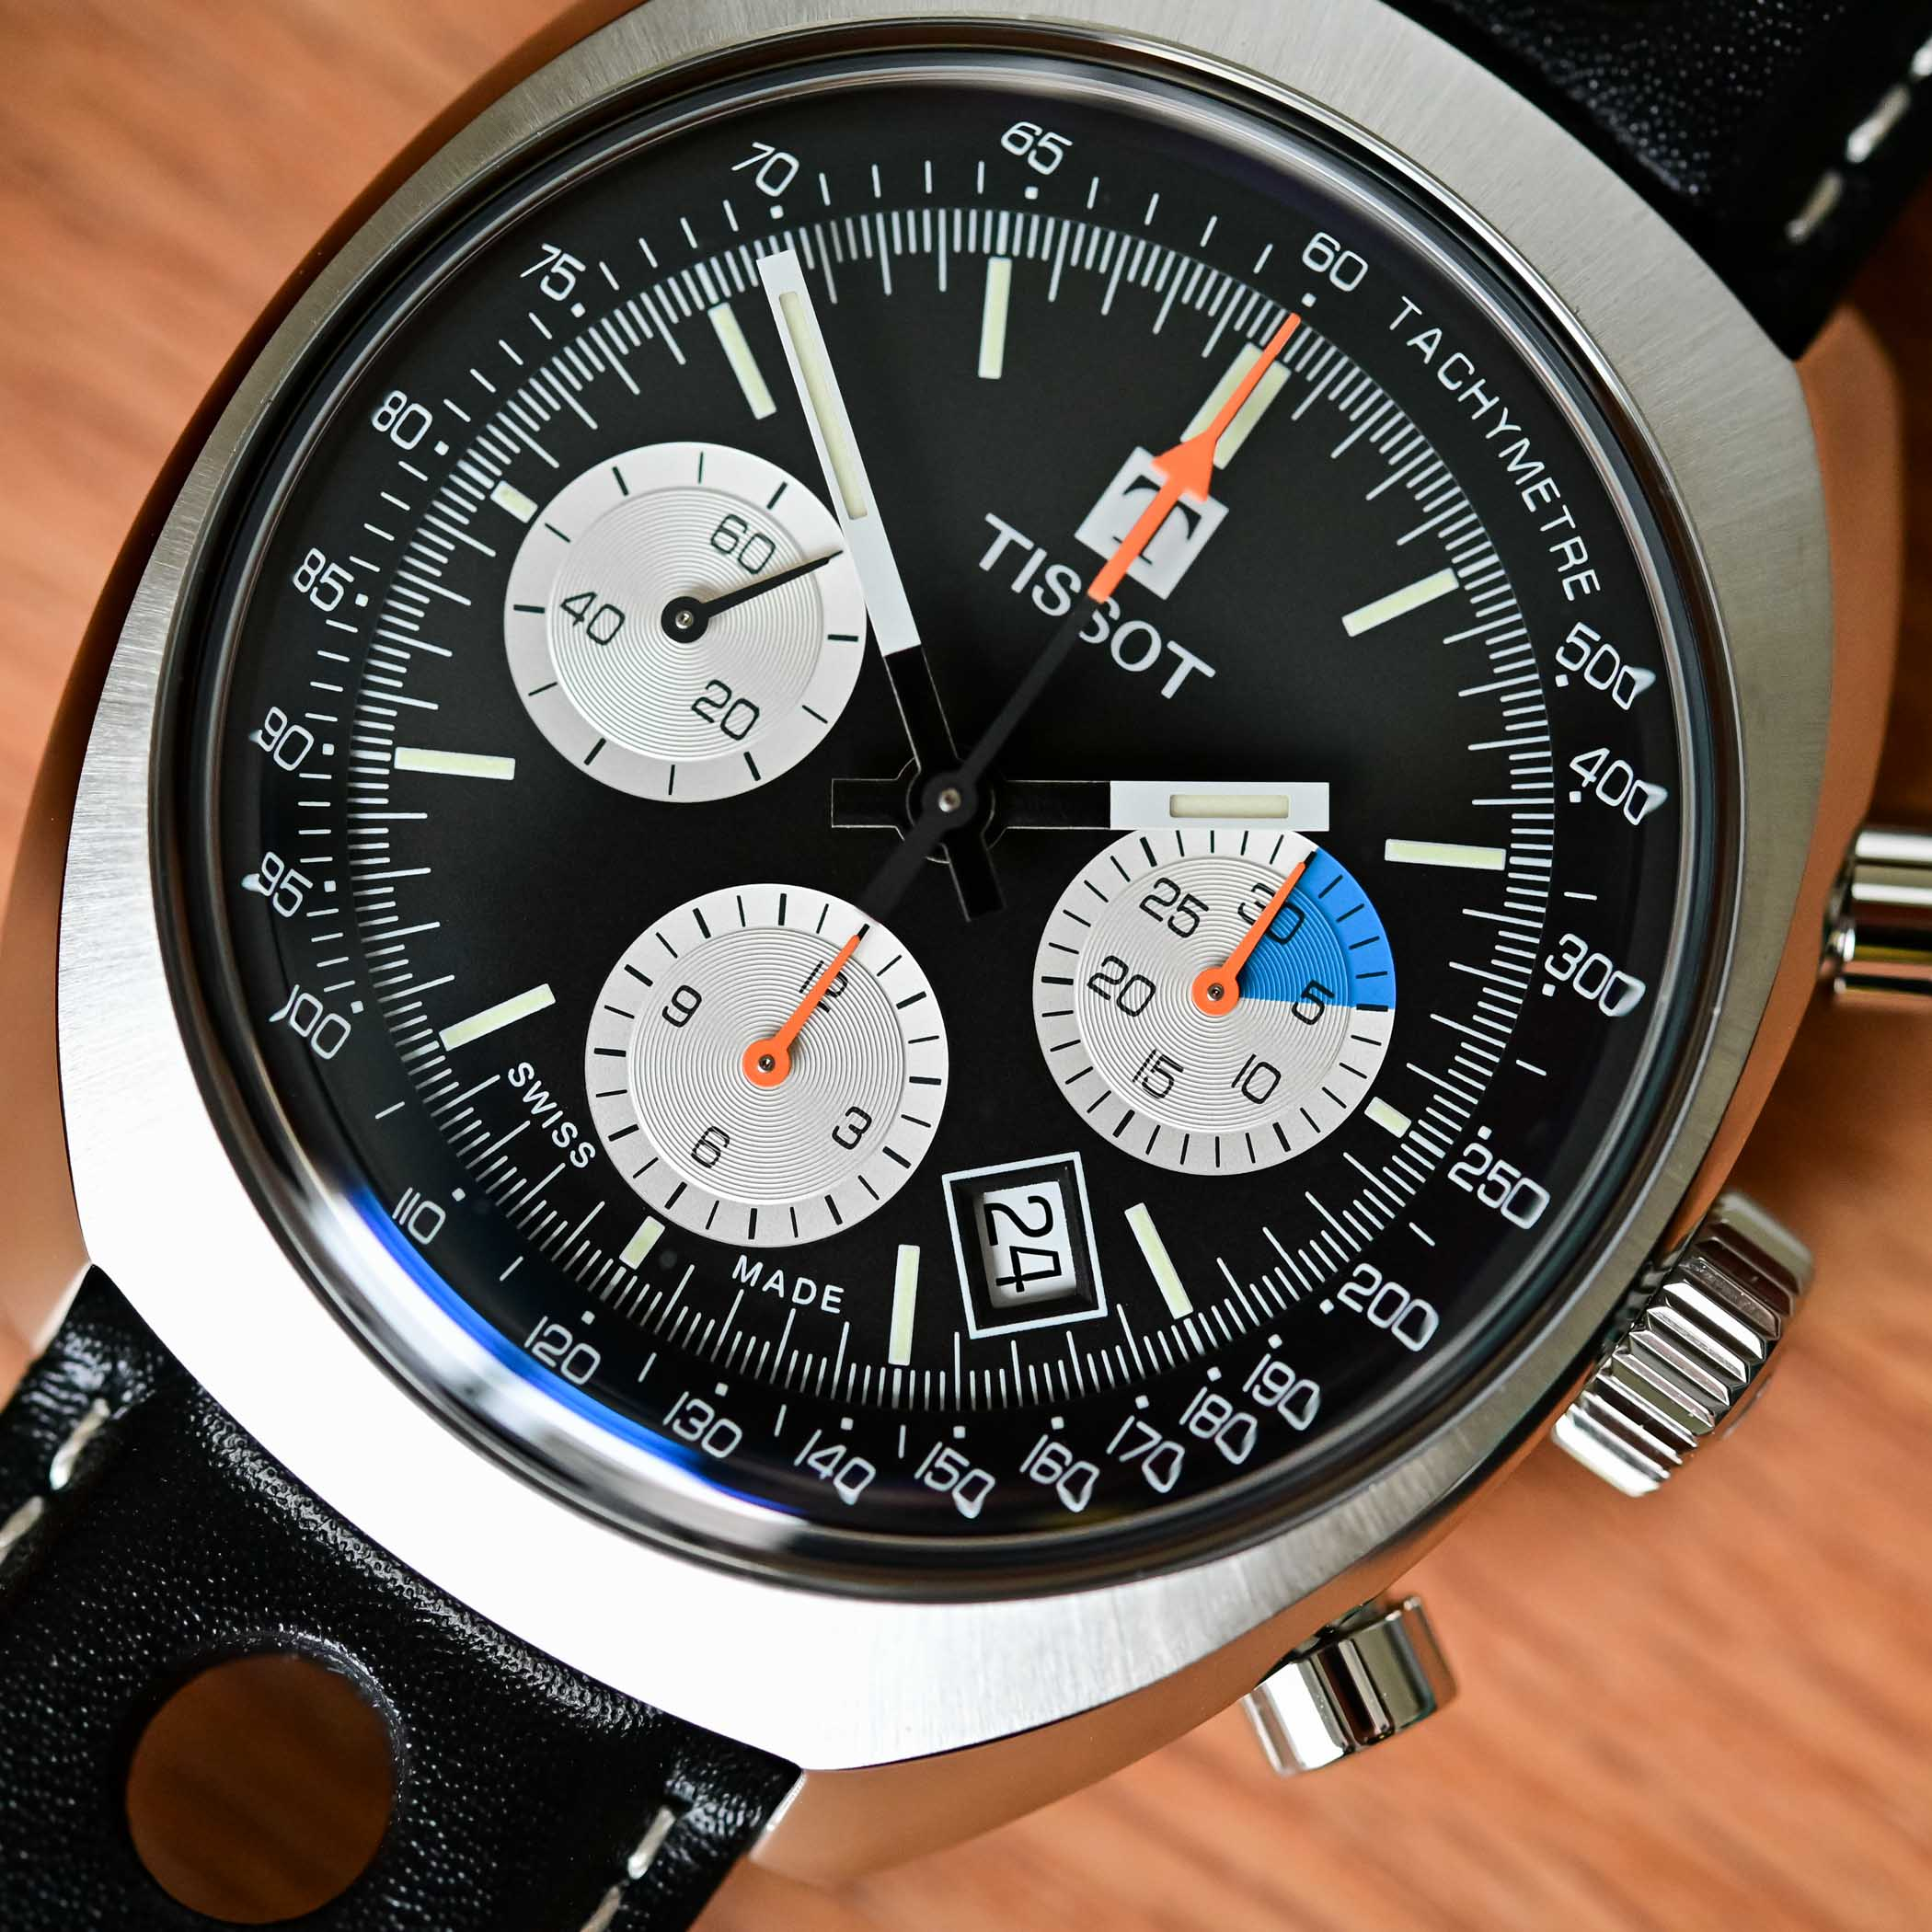 tissot-heritage-1973-chronograph-T124.427.16.051.00-review-4.jpg